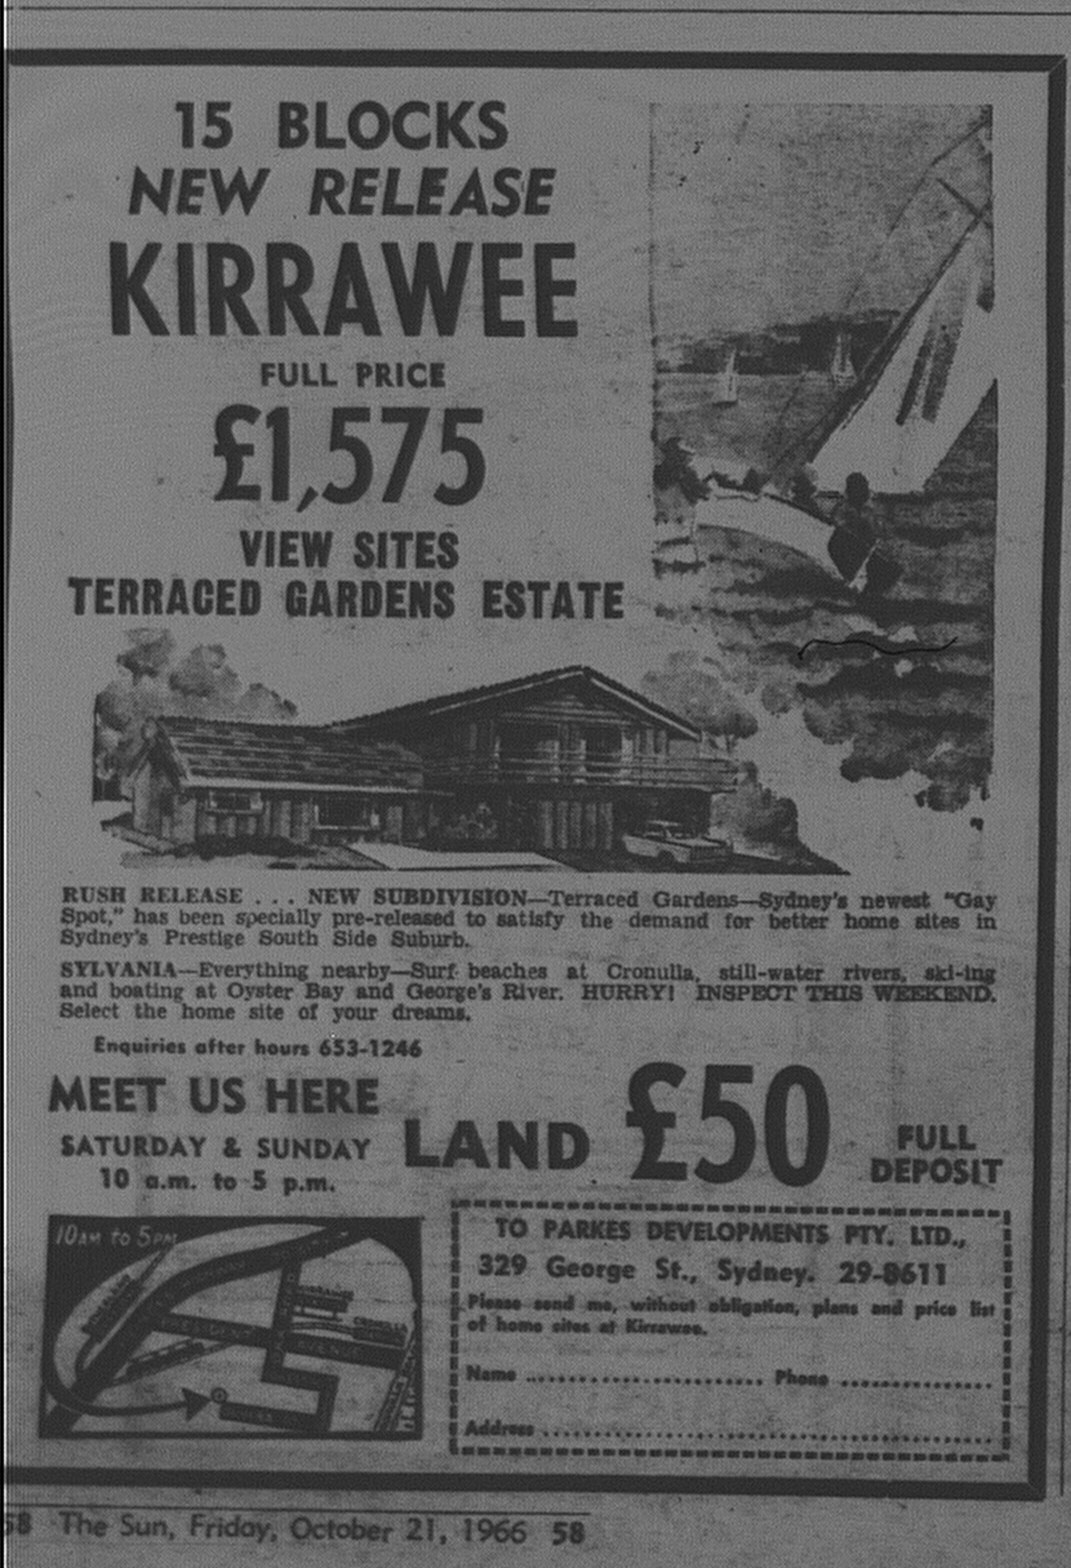 Kirrawee Ad October 21 1966 the sun 58